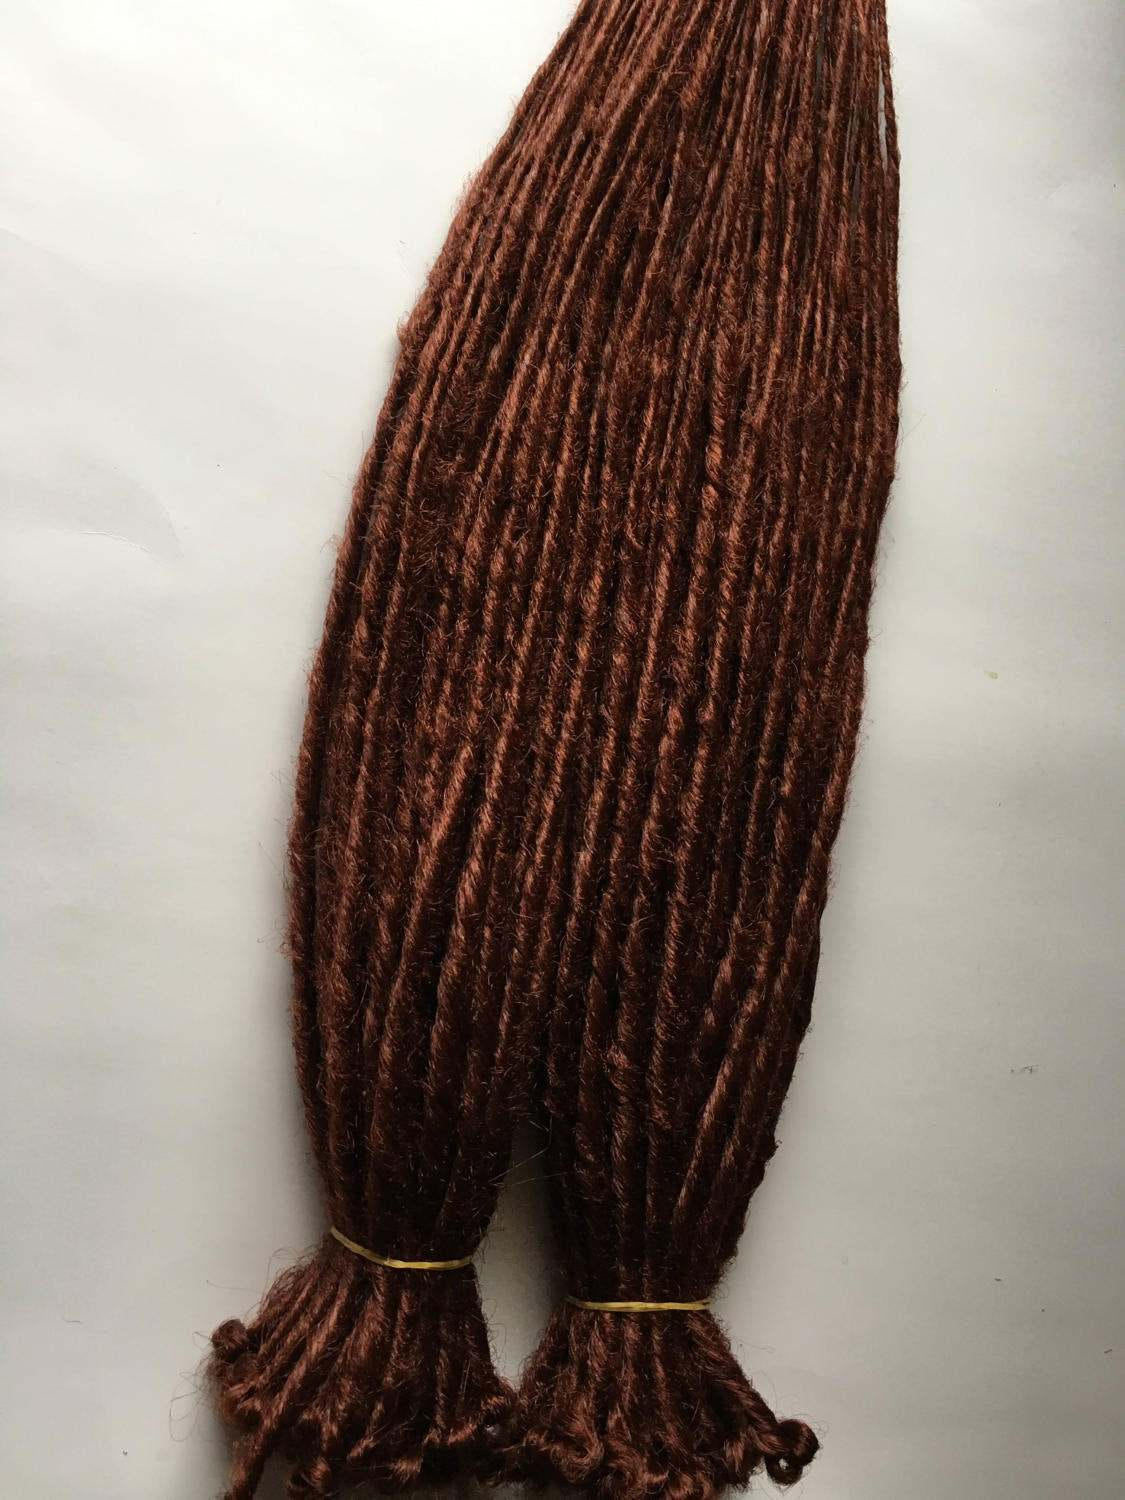 Mahogany Red Auburn Brown Dreads 70 SE Synthetic Dreadlocks Dread Fall Hair Extensions